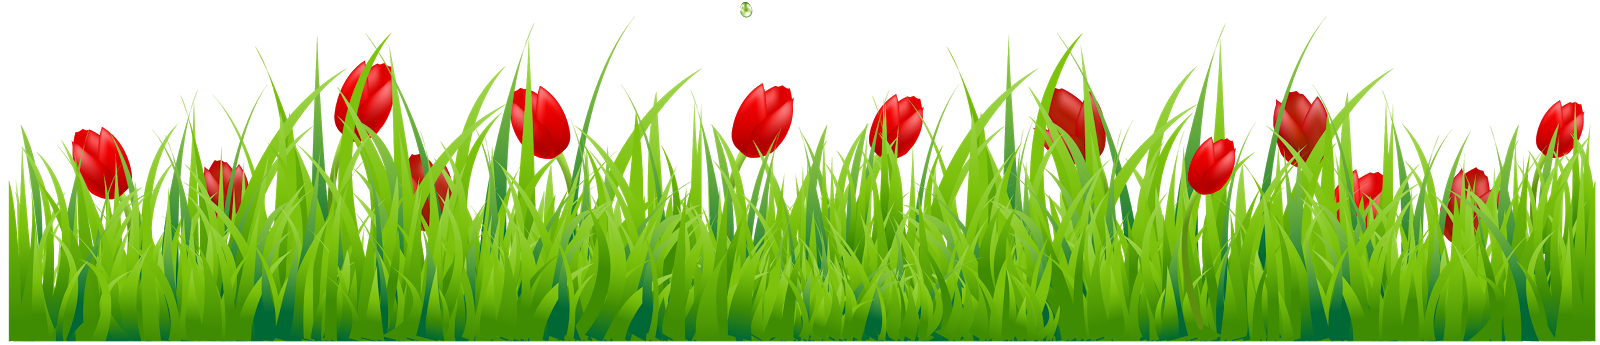 Grass photoshop png. Images for studiopk